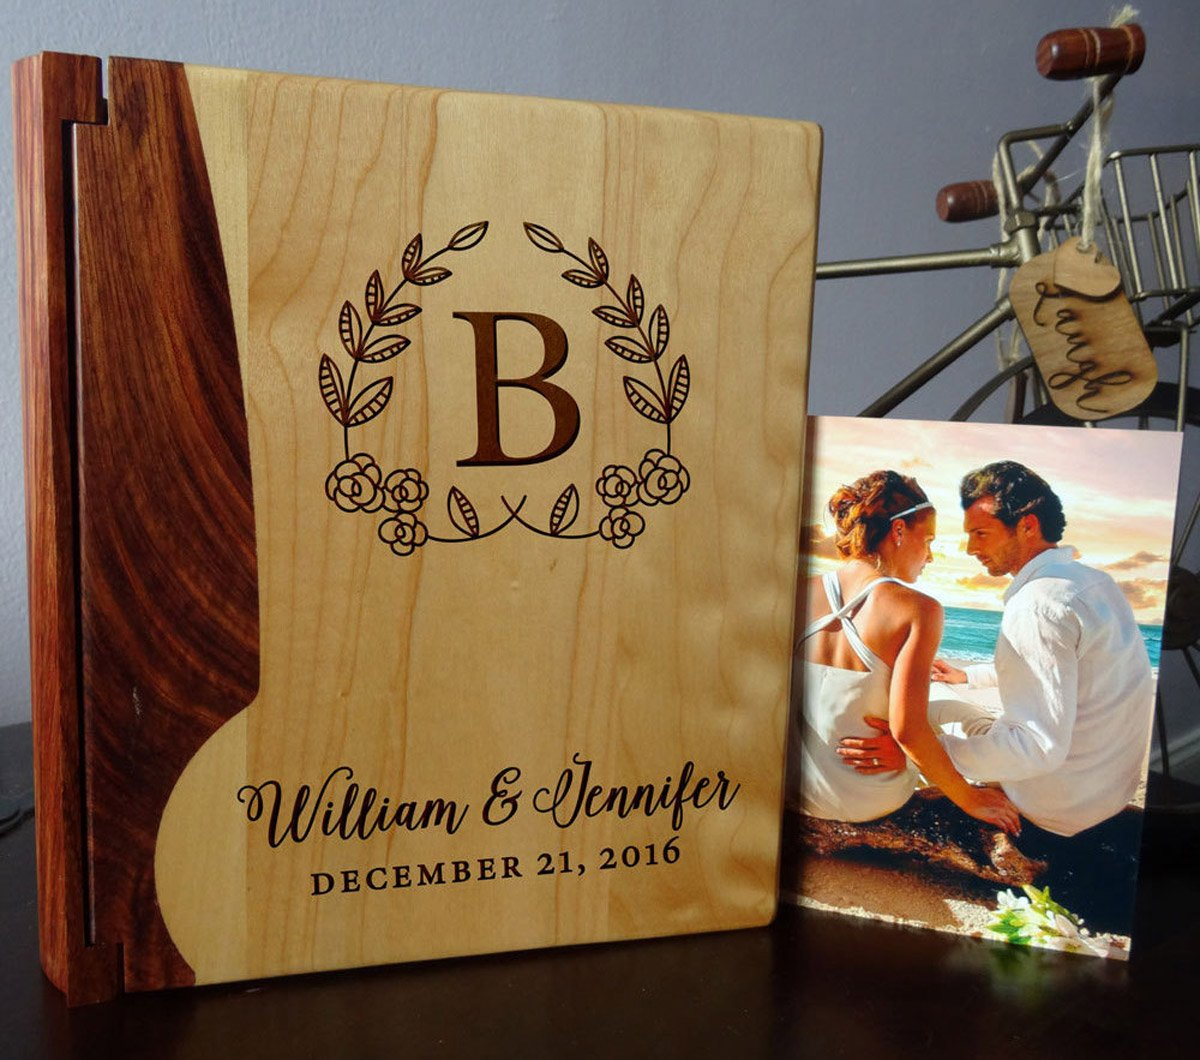 Personalized Wood Cover Photo Album, Custom Engraved Wedding Album, Style 105 (Maple & Rosewood Cover) LoveToCreateStamps